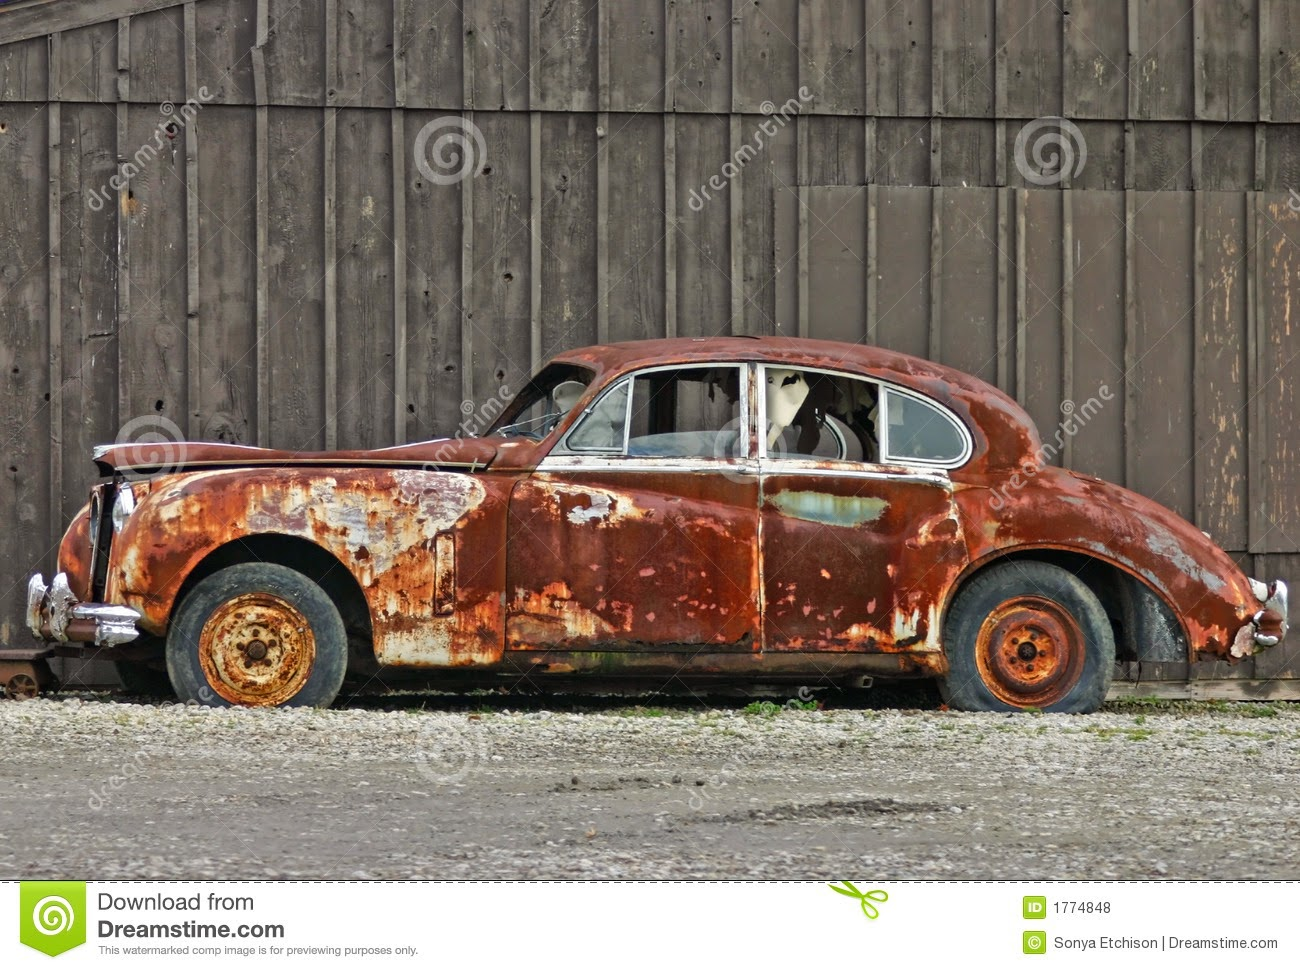 The Automobile and American Life: Nothing I hate more than rusty cars!